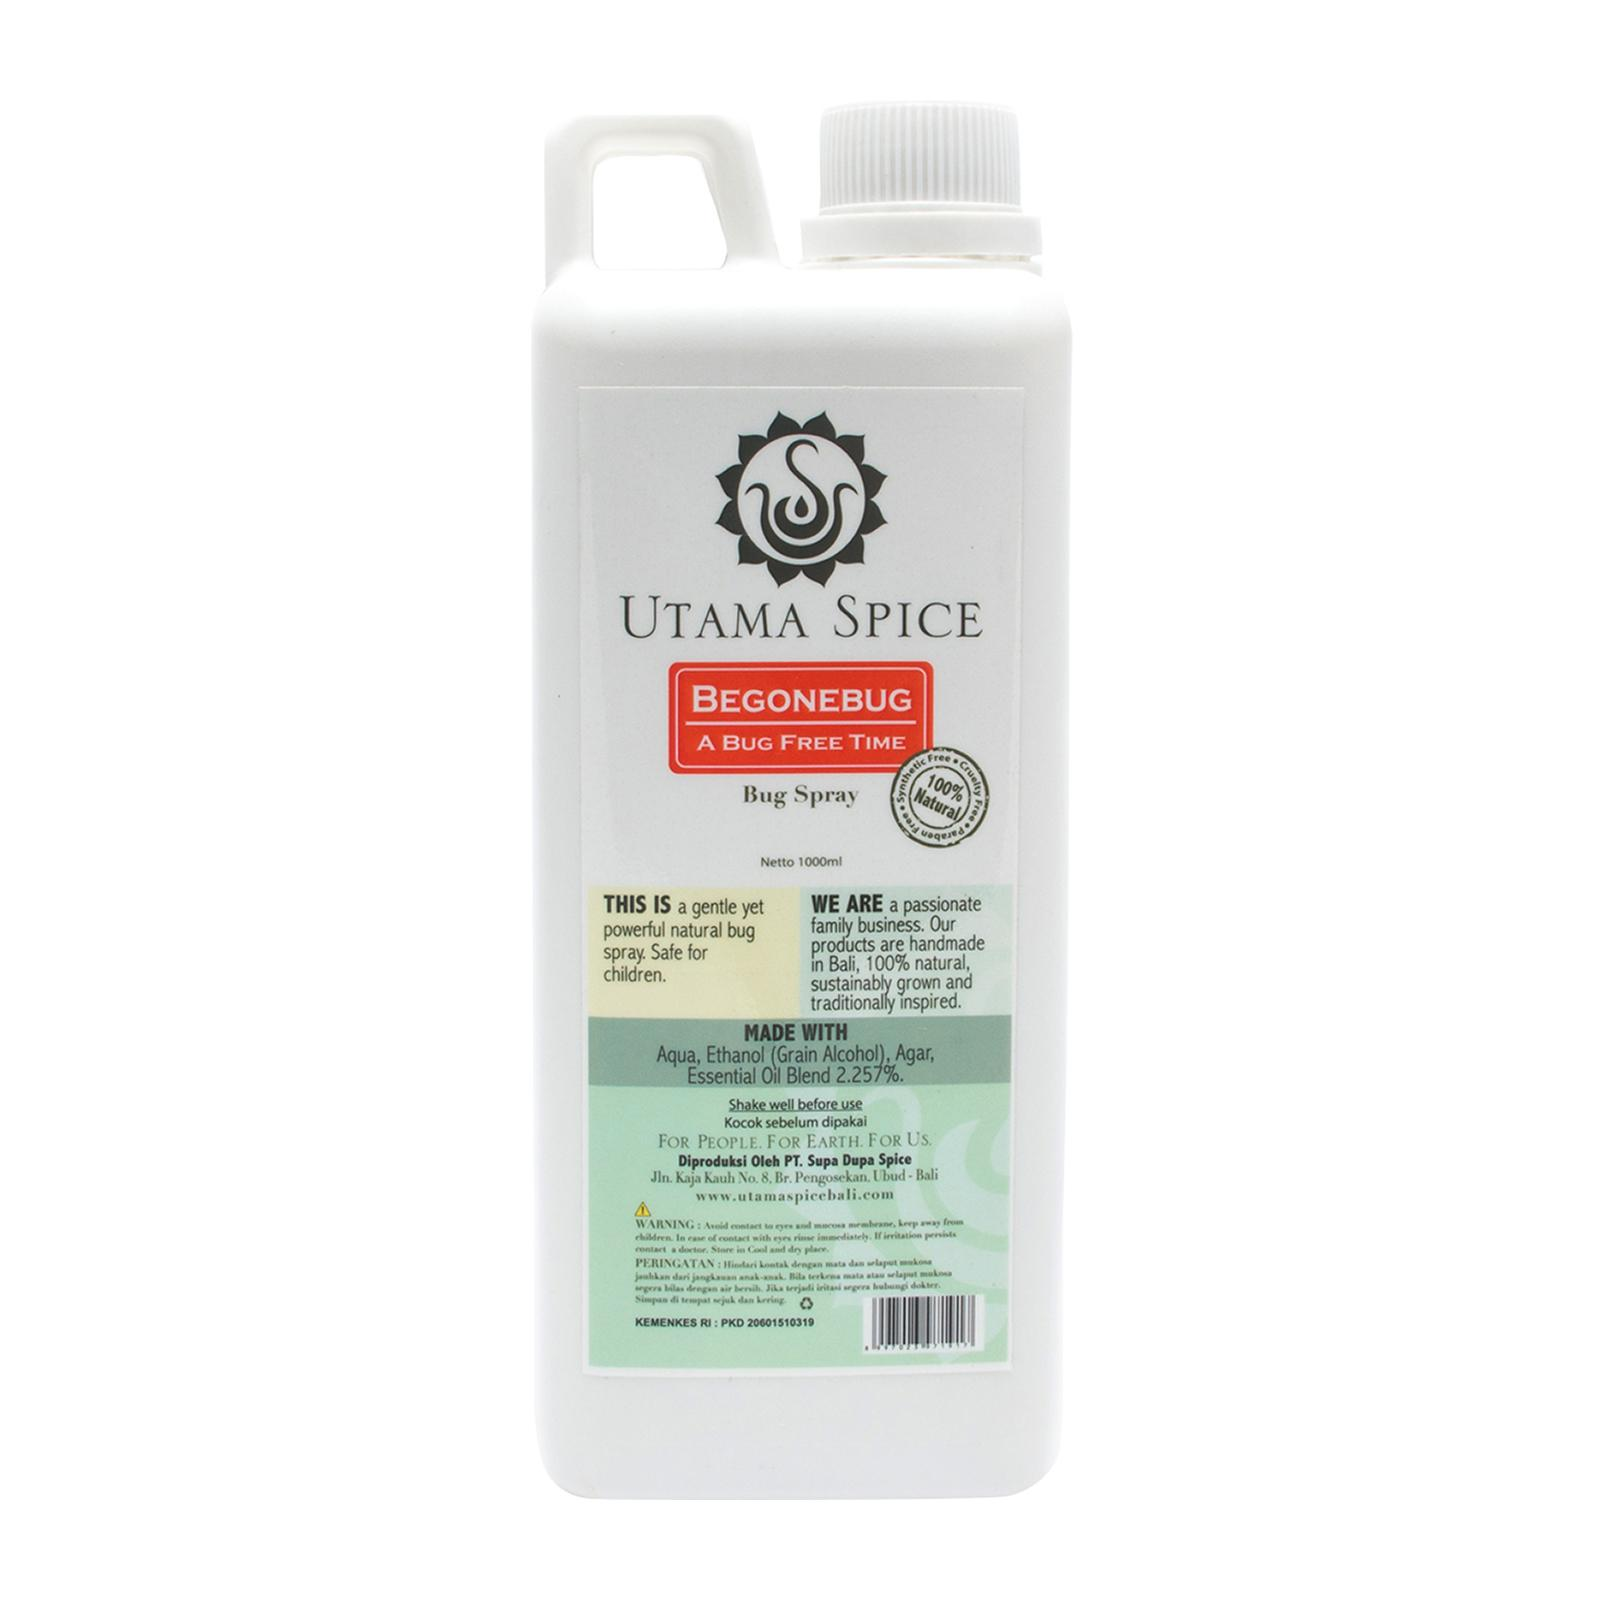 UTAMA SPICE Begone Bug Spray (1 Litre Refill) 100% Natural Mosquito Repellent